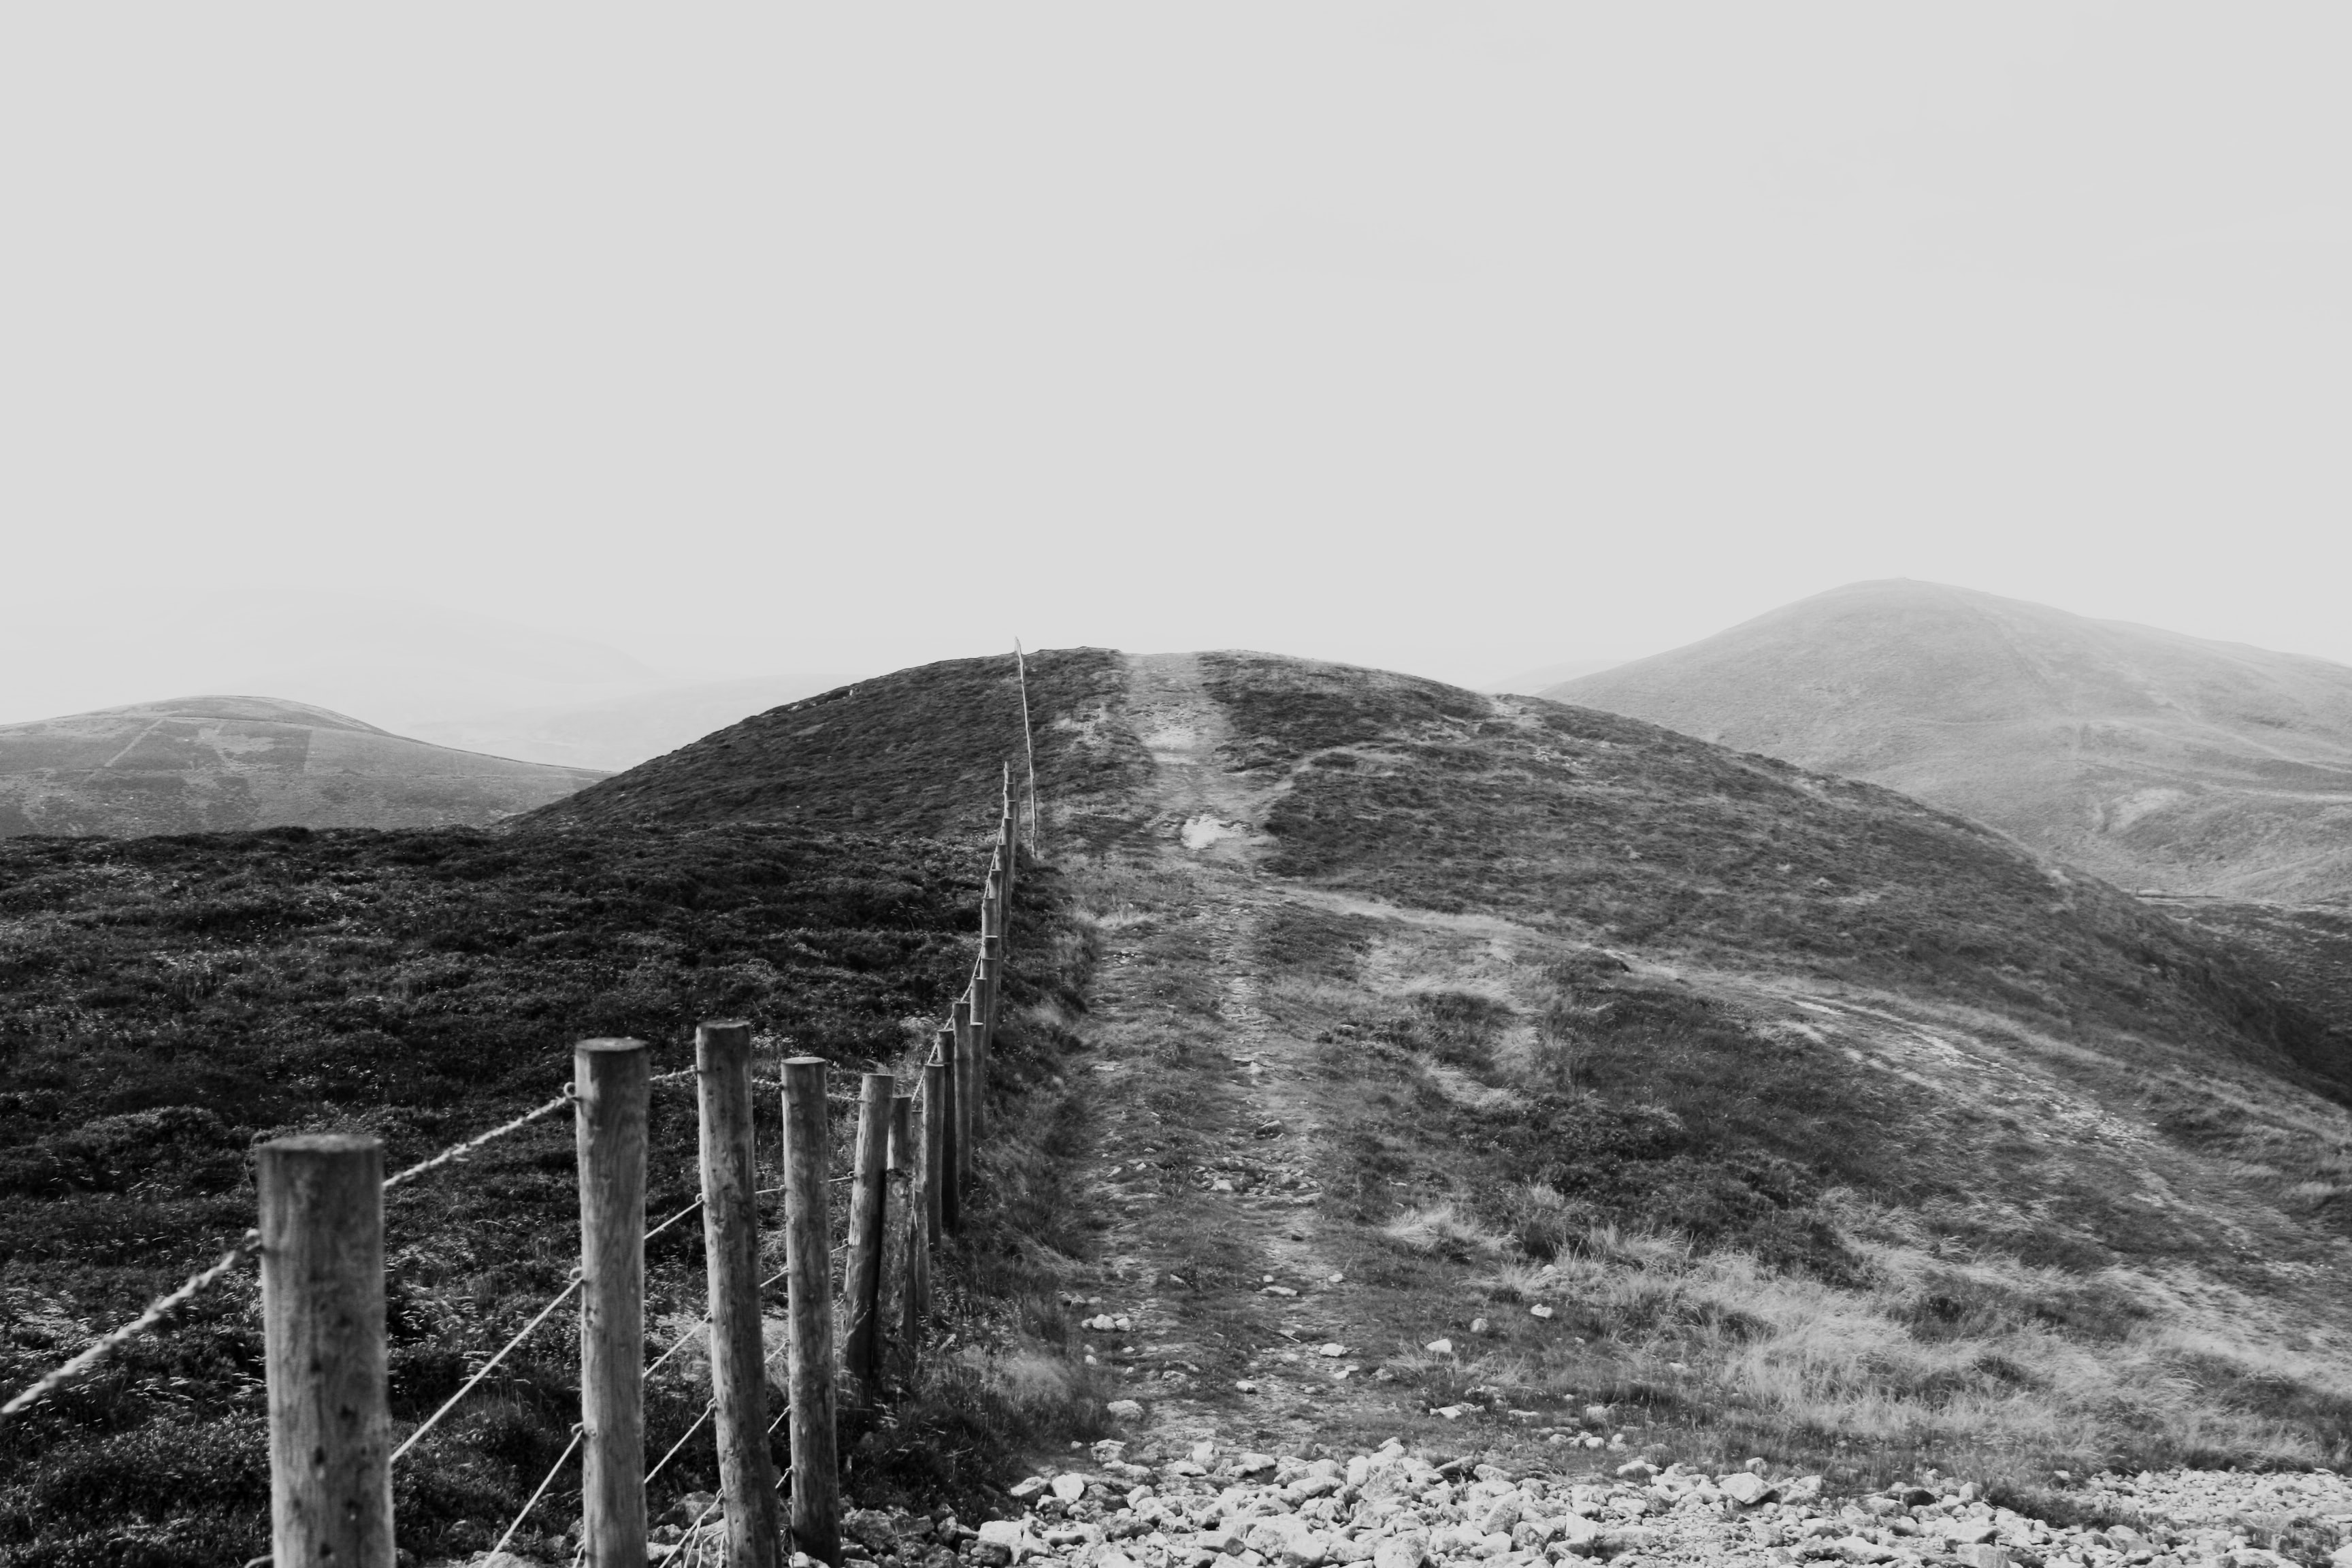 Black and white shot of wire fence with wooden posts on grassy hills with clear sky